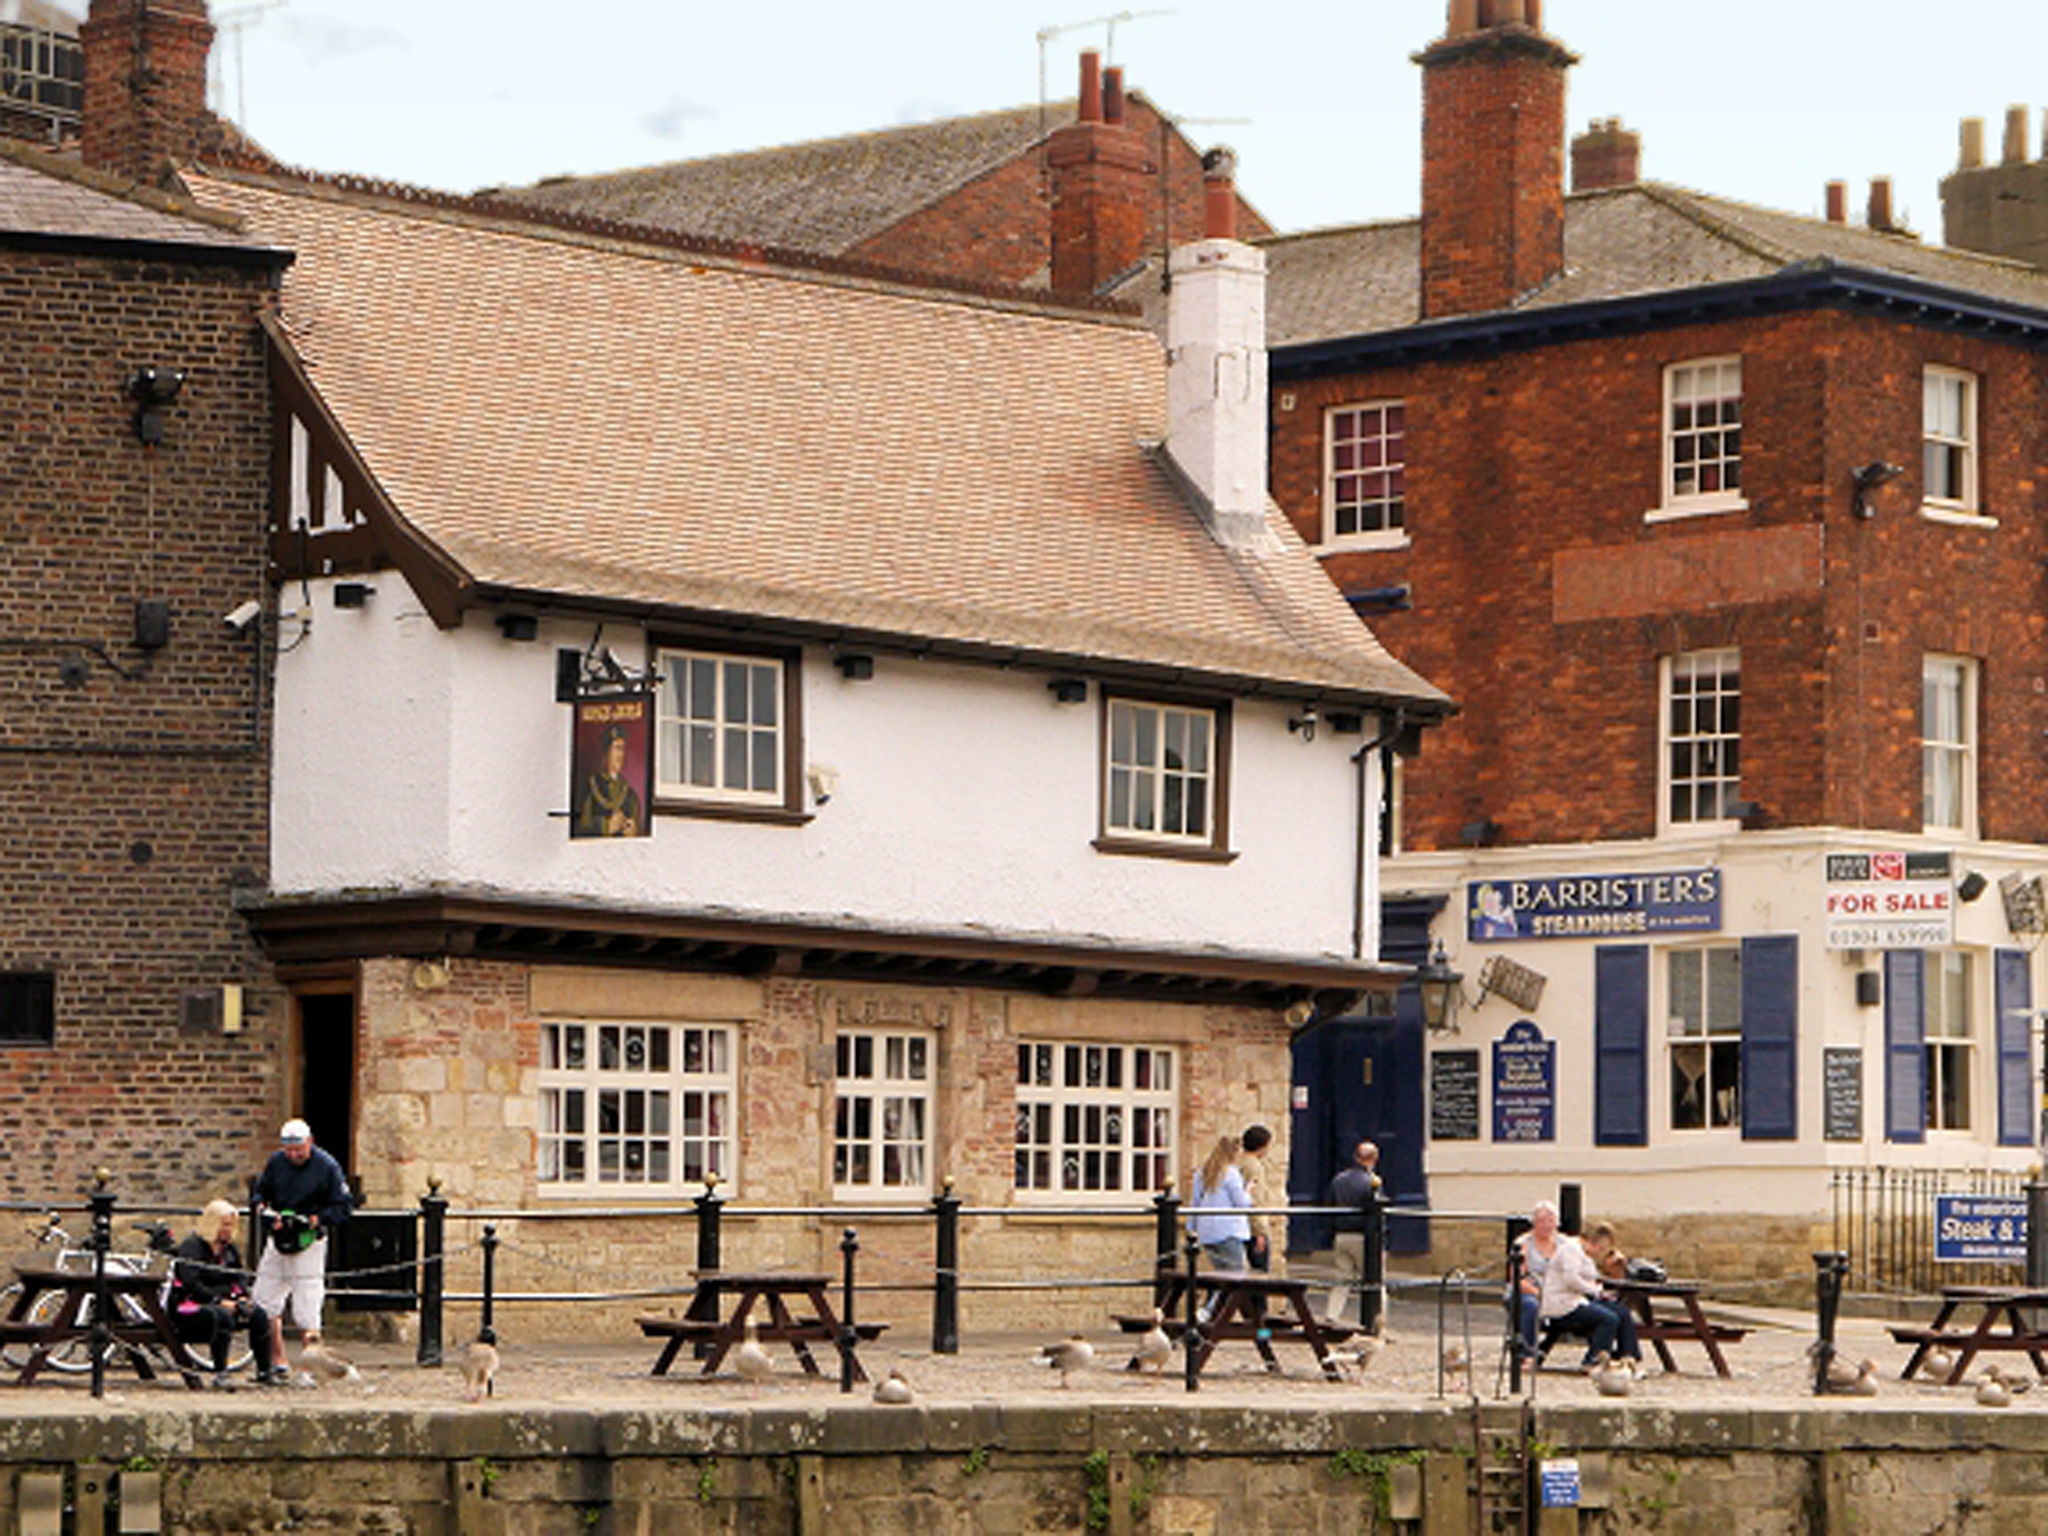 The Kings Arms pub in York